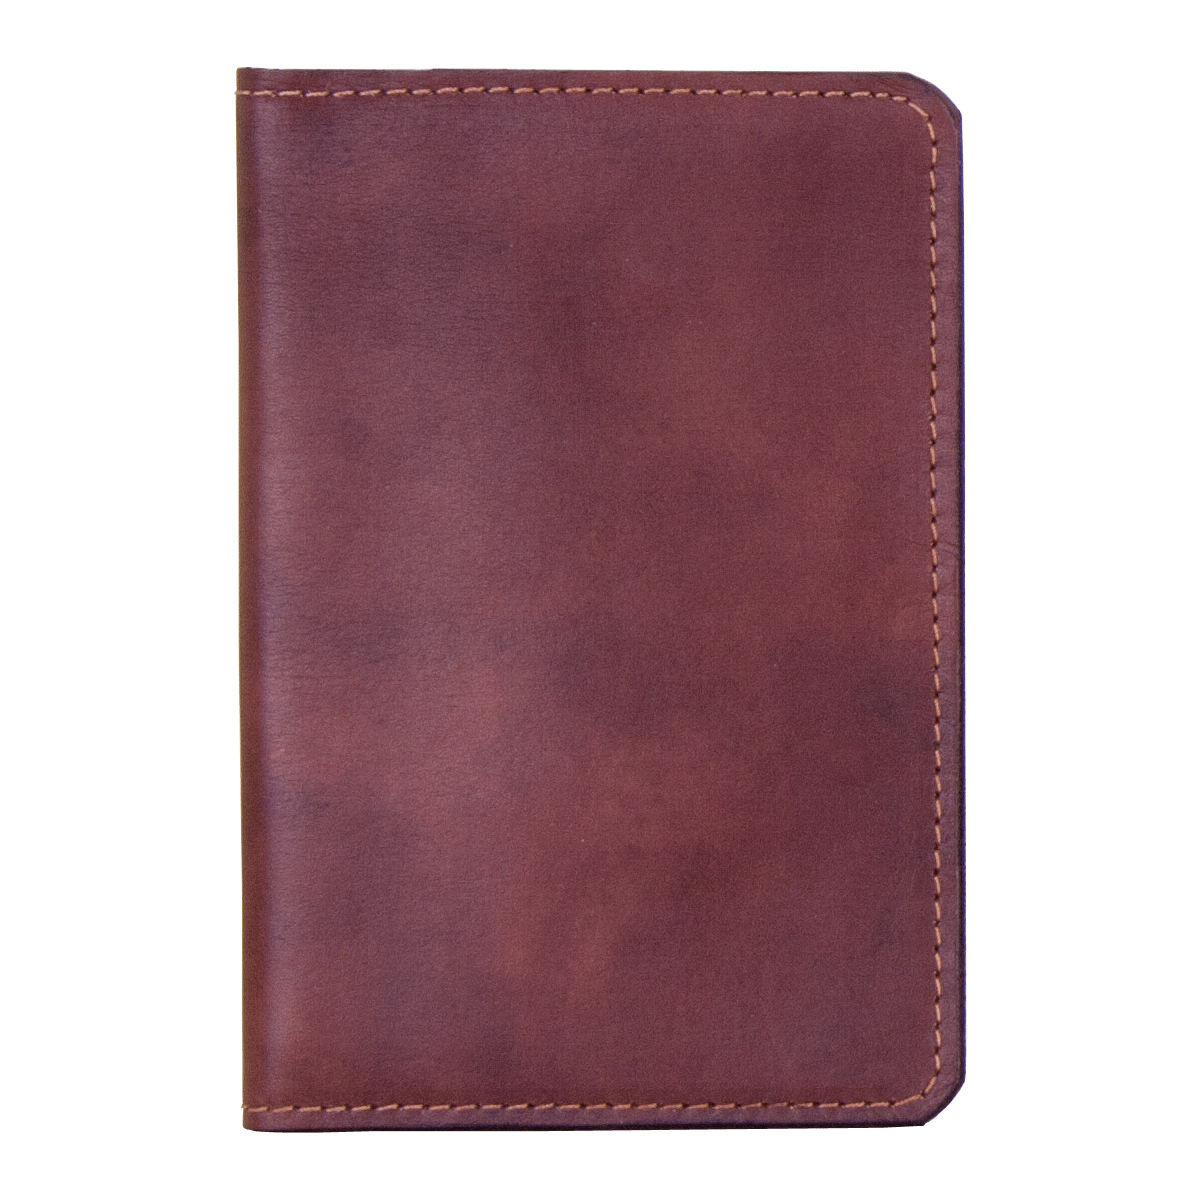 Leather Passport Holder Mid Brown, Part of the Luxury Leather Travel Set